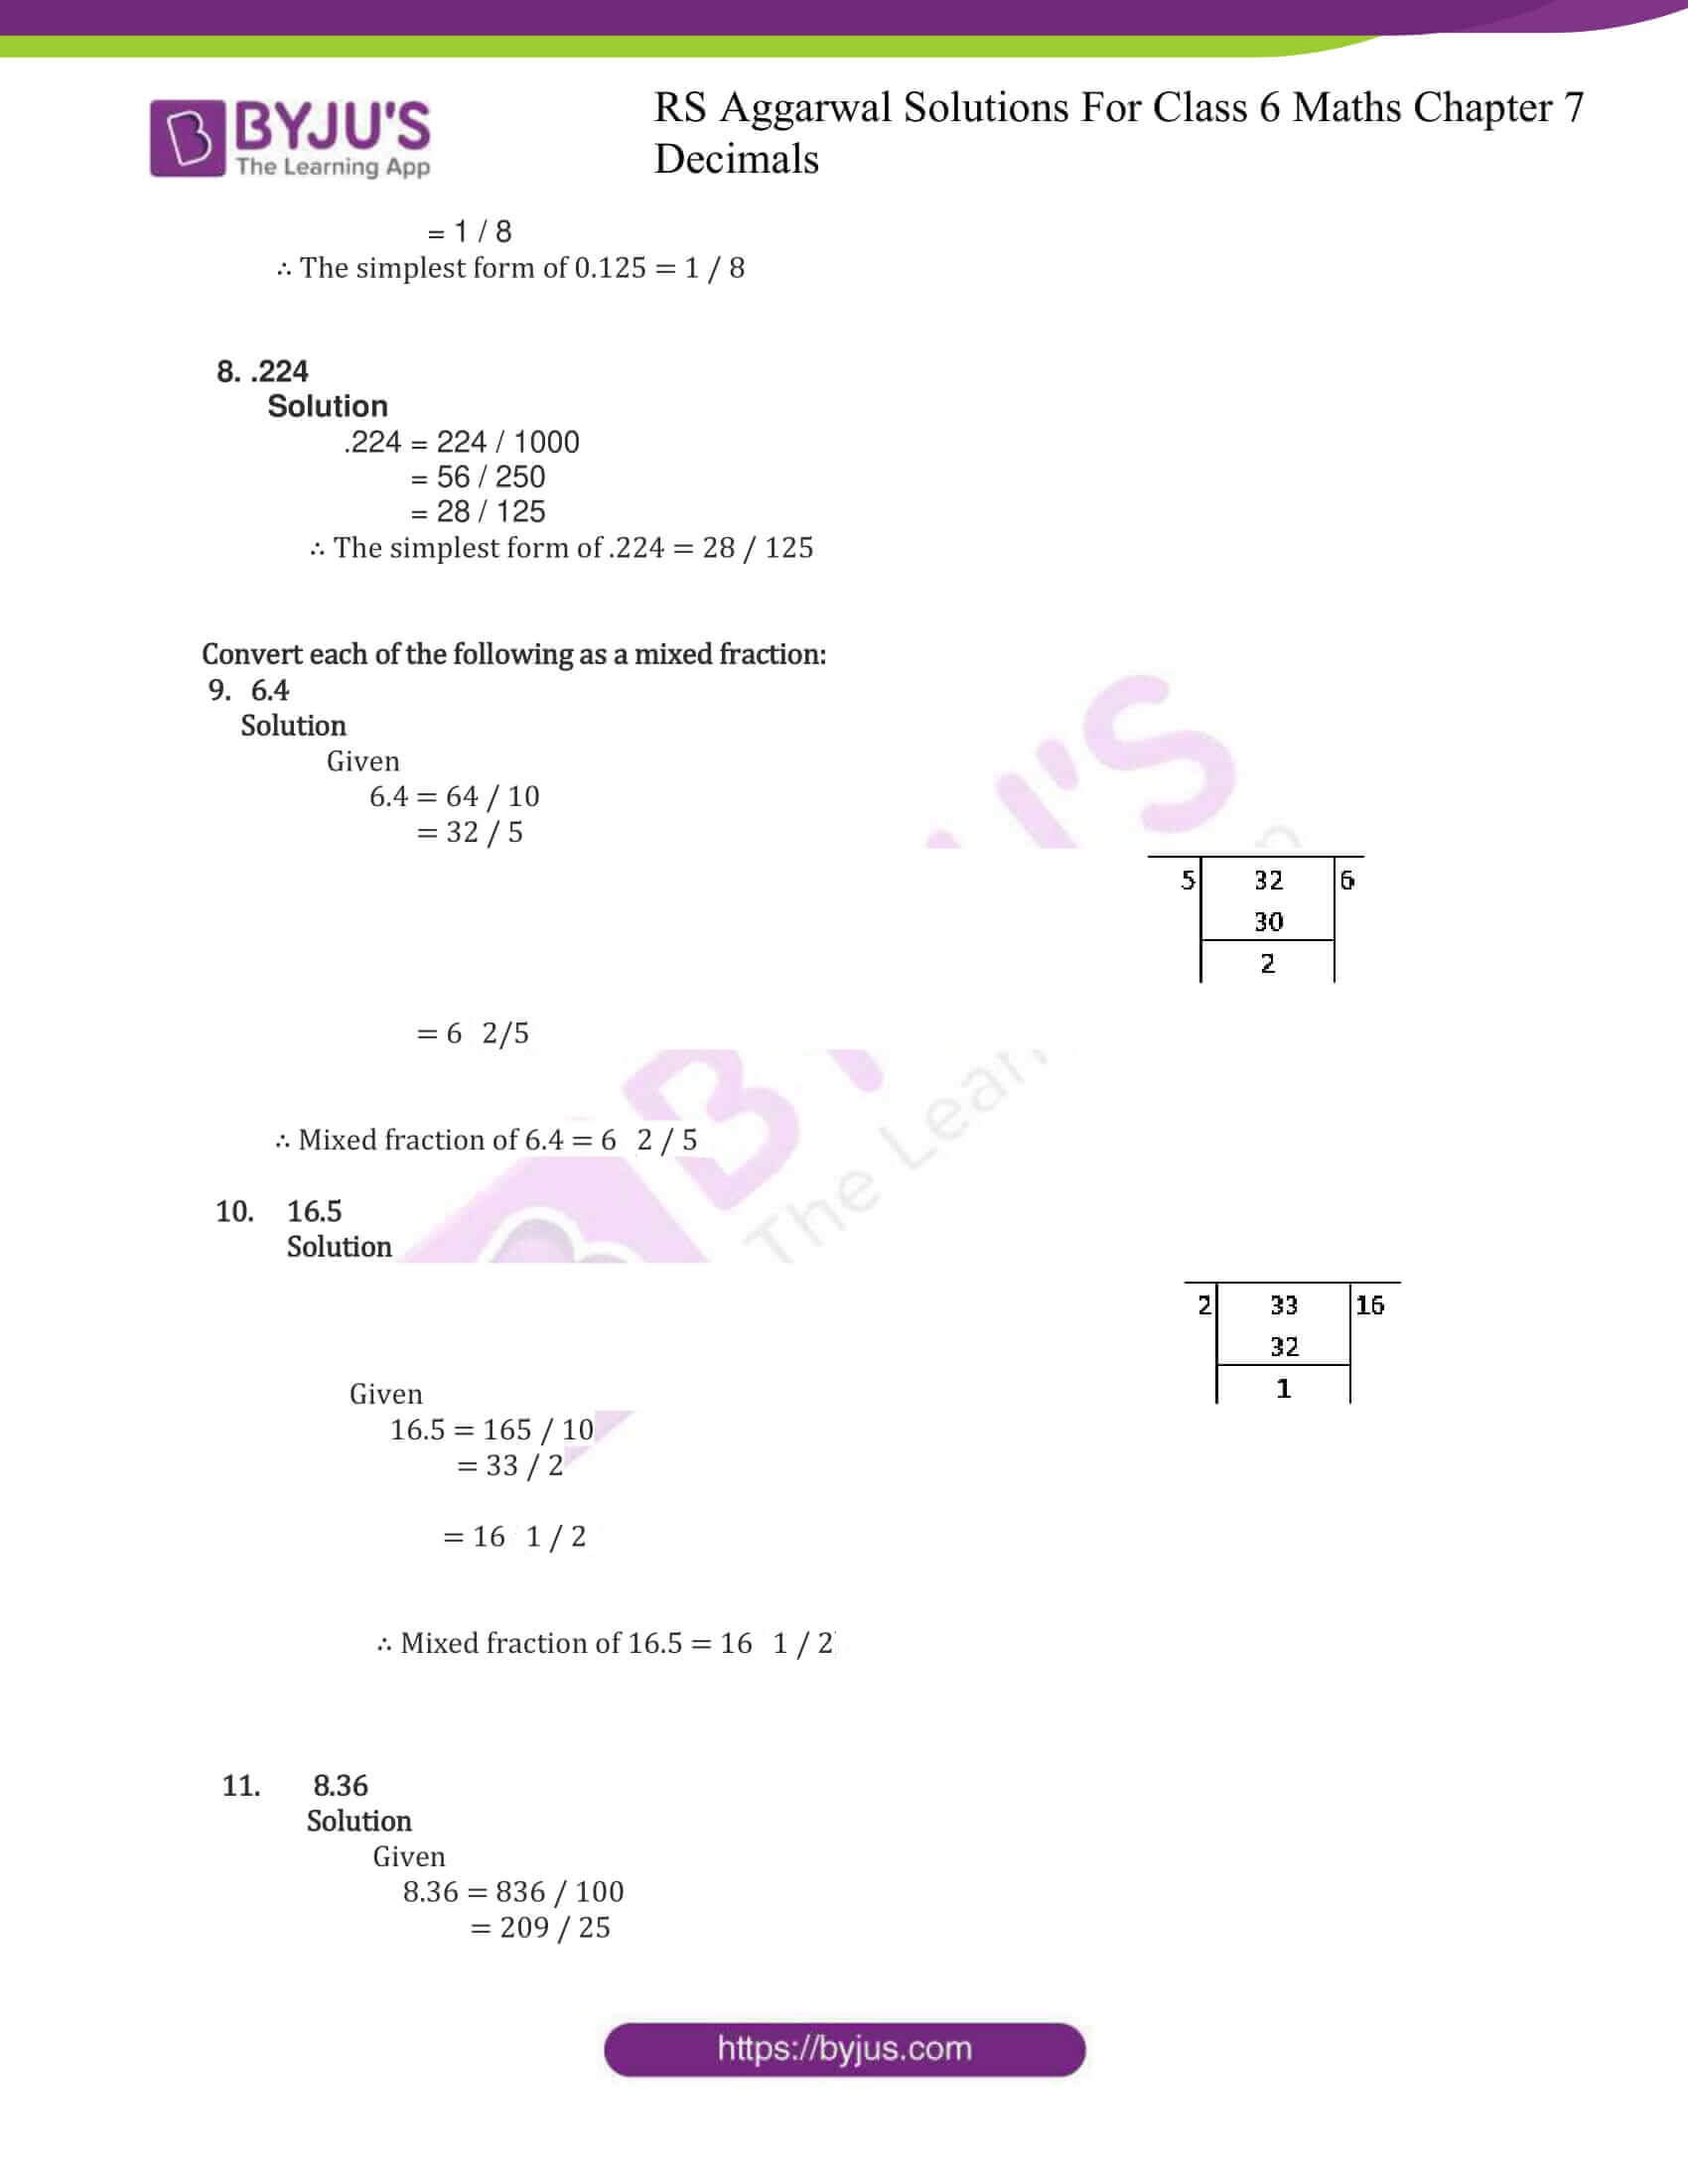 rs aggarwal solutions for class 6 maths chapter 7 deci ex b 2